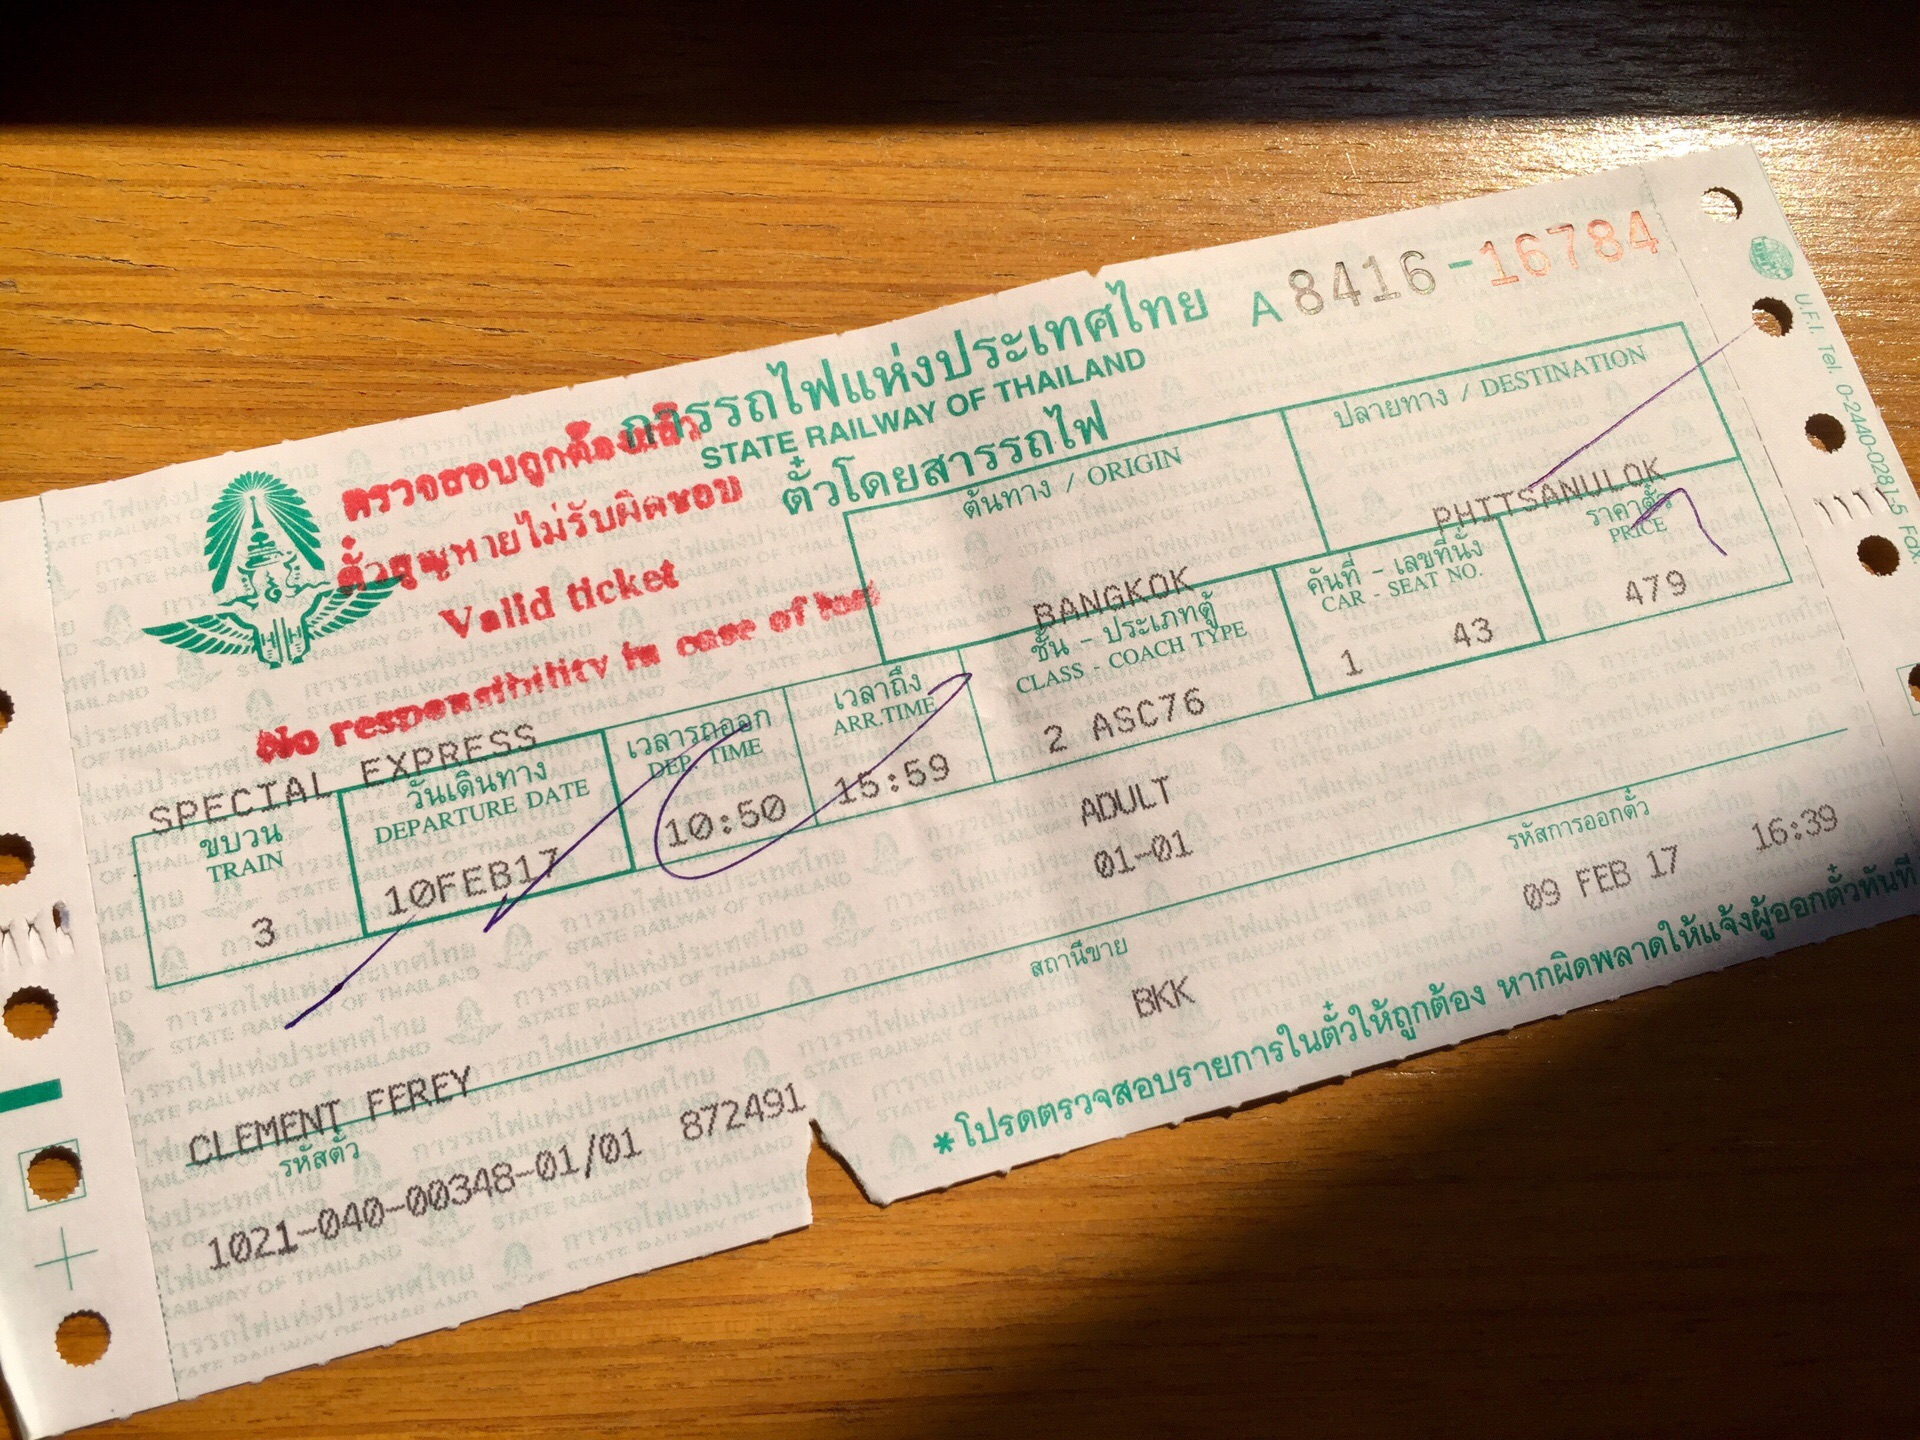 Billet de train Thaïlandais